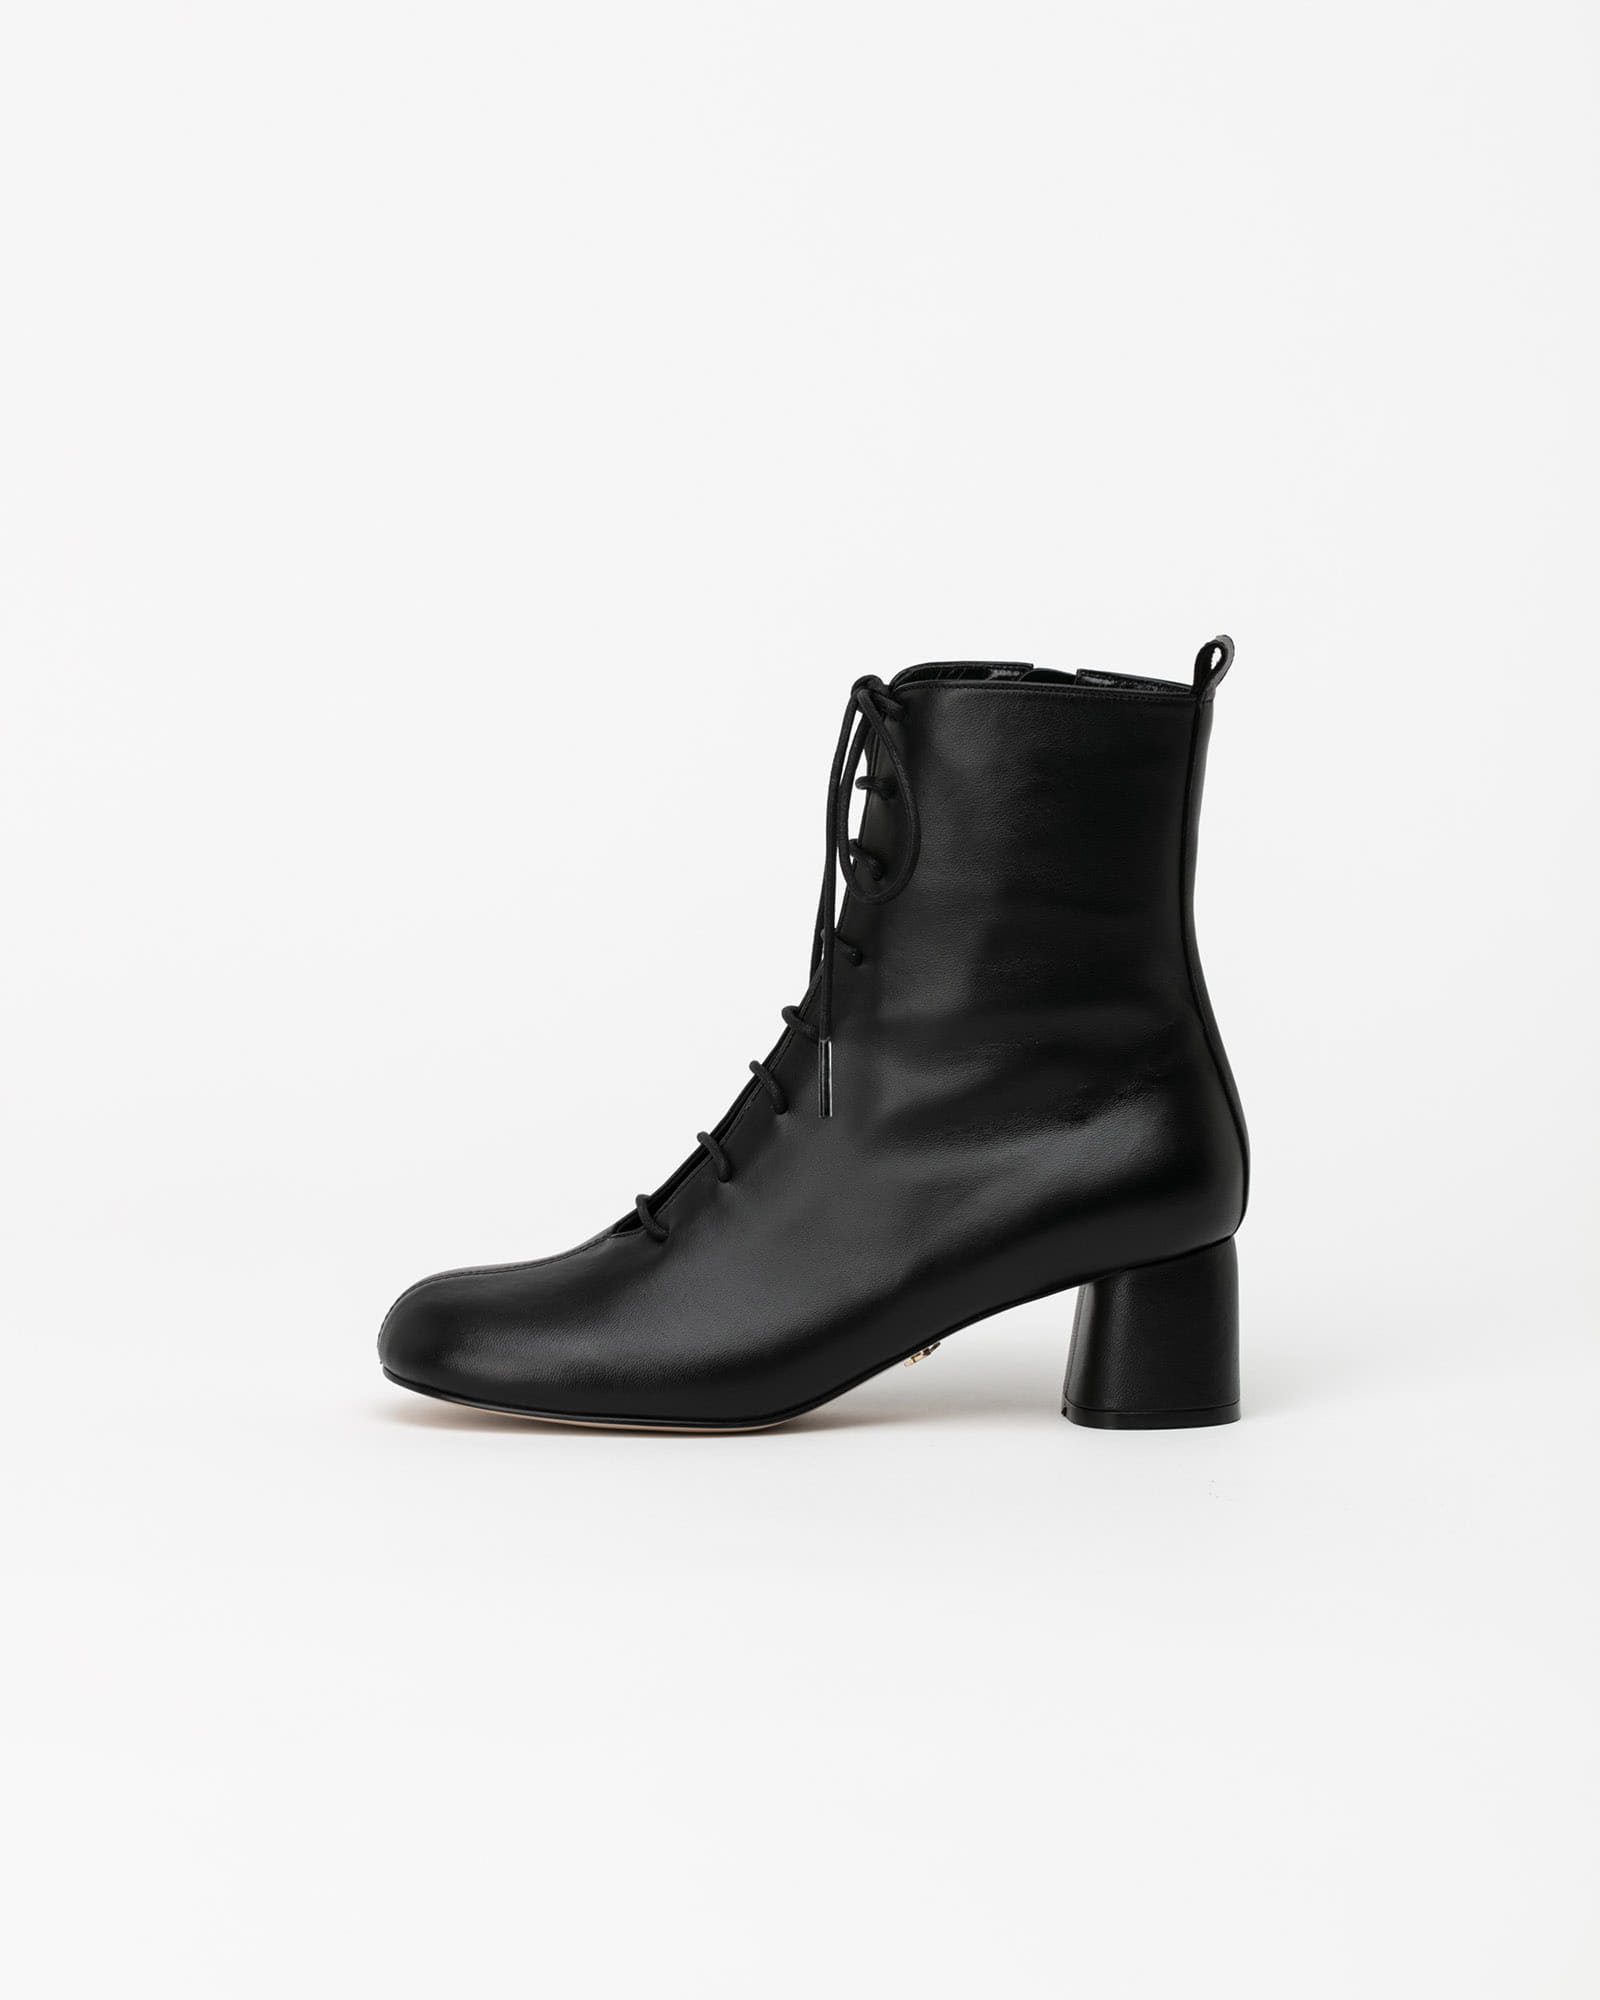 Proton Lace-up Boots in Black